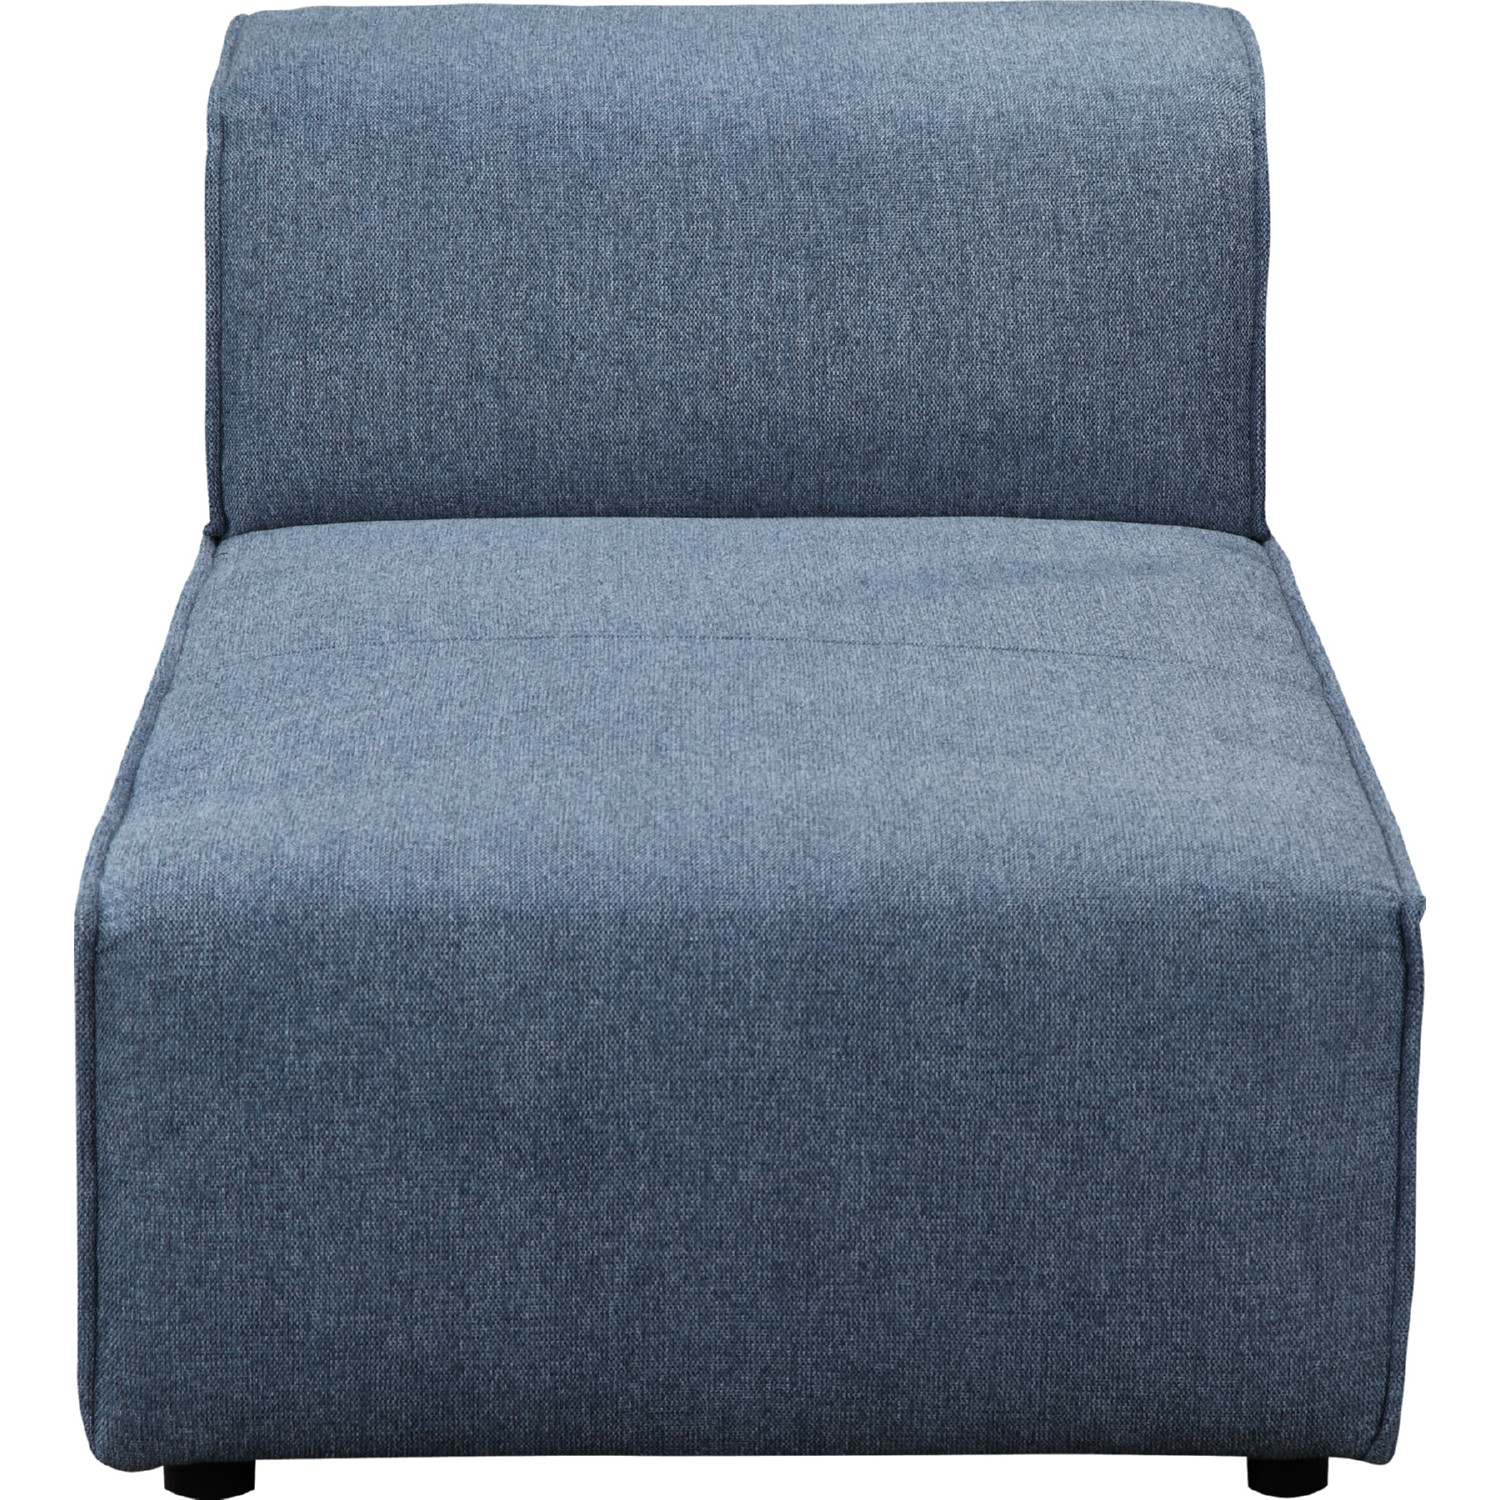 Rodeo Chaise Sectional Sofa Unit In Navy Blue Fabric By Moe S Home Collection